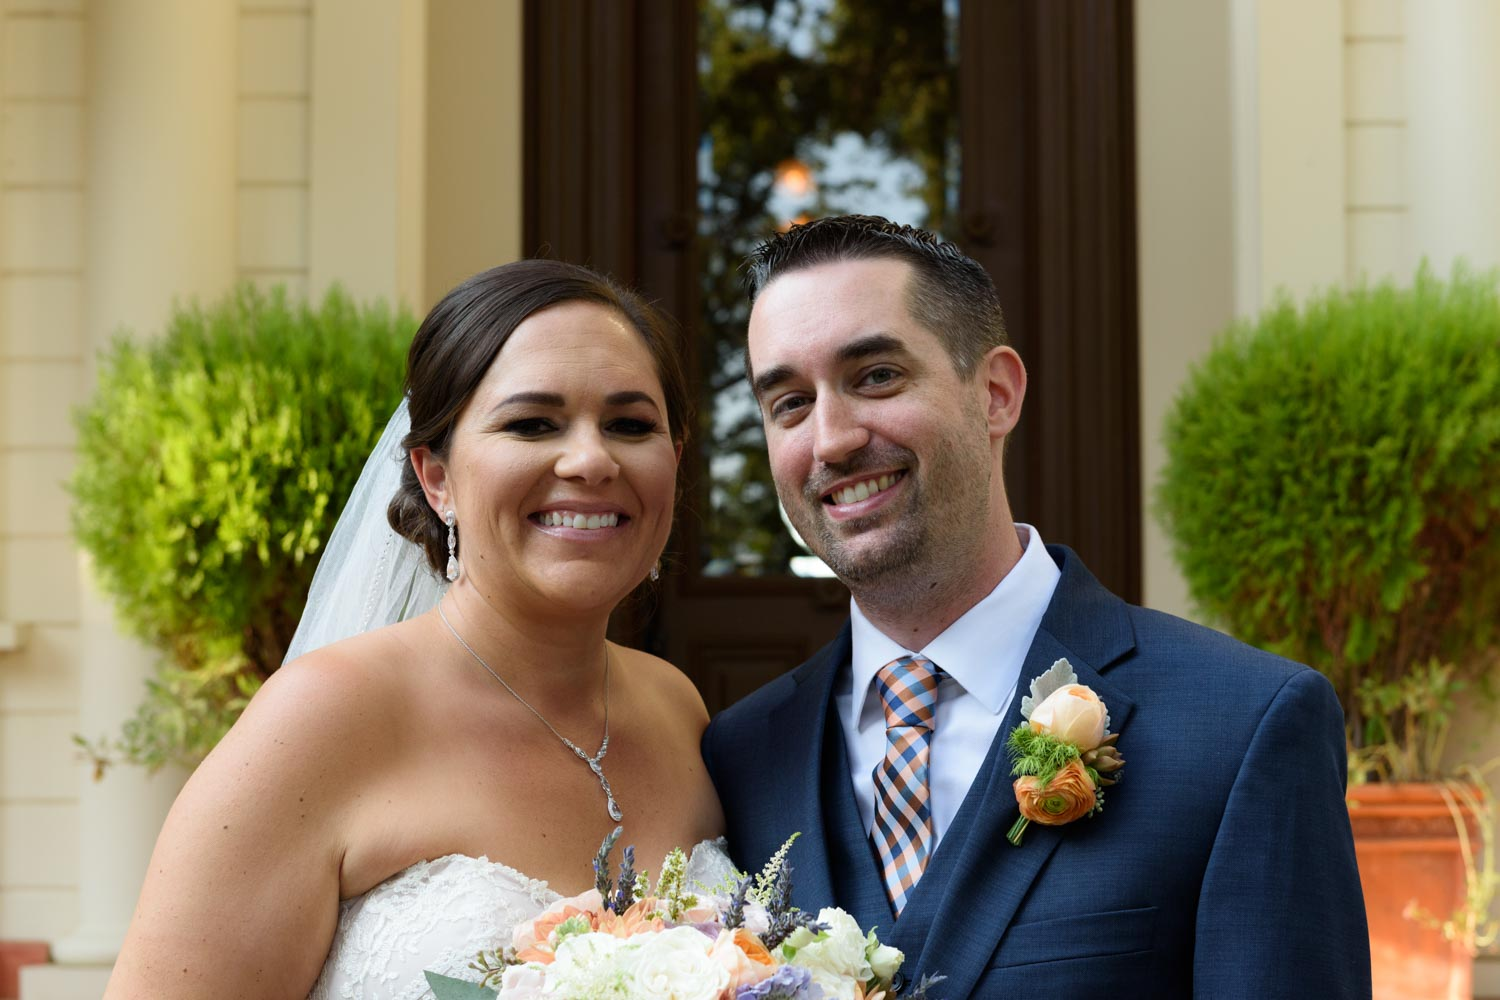 Closeup of smiling bride and groom